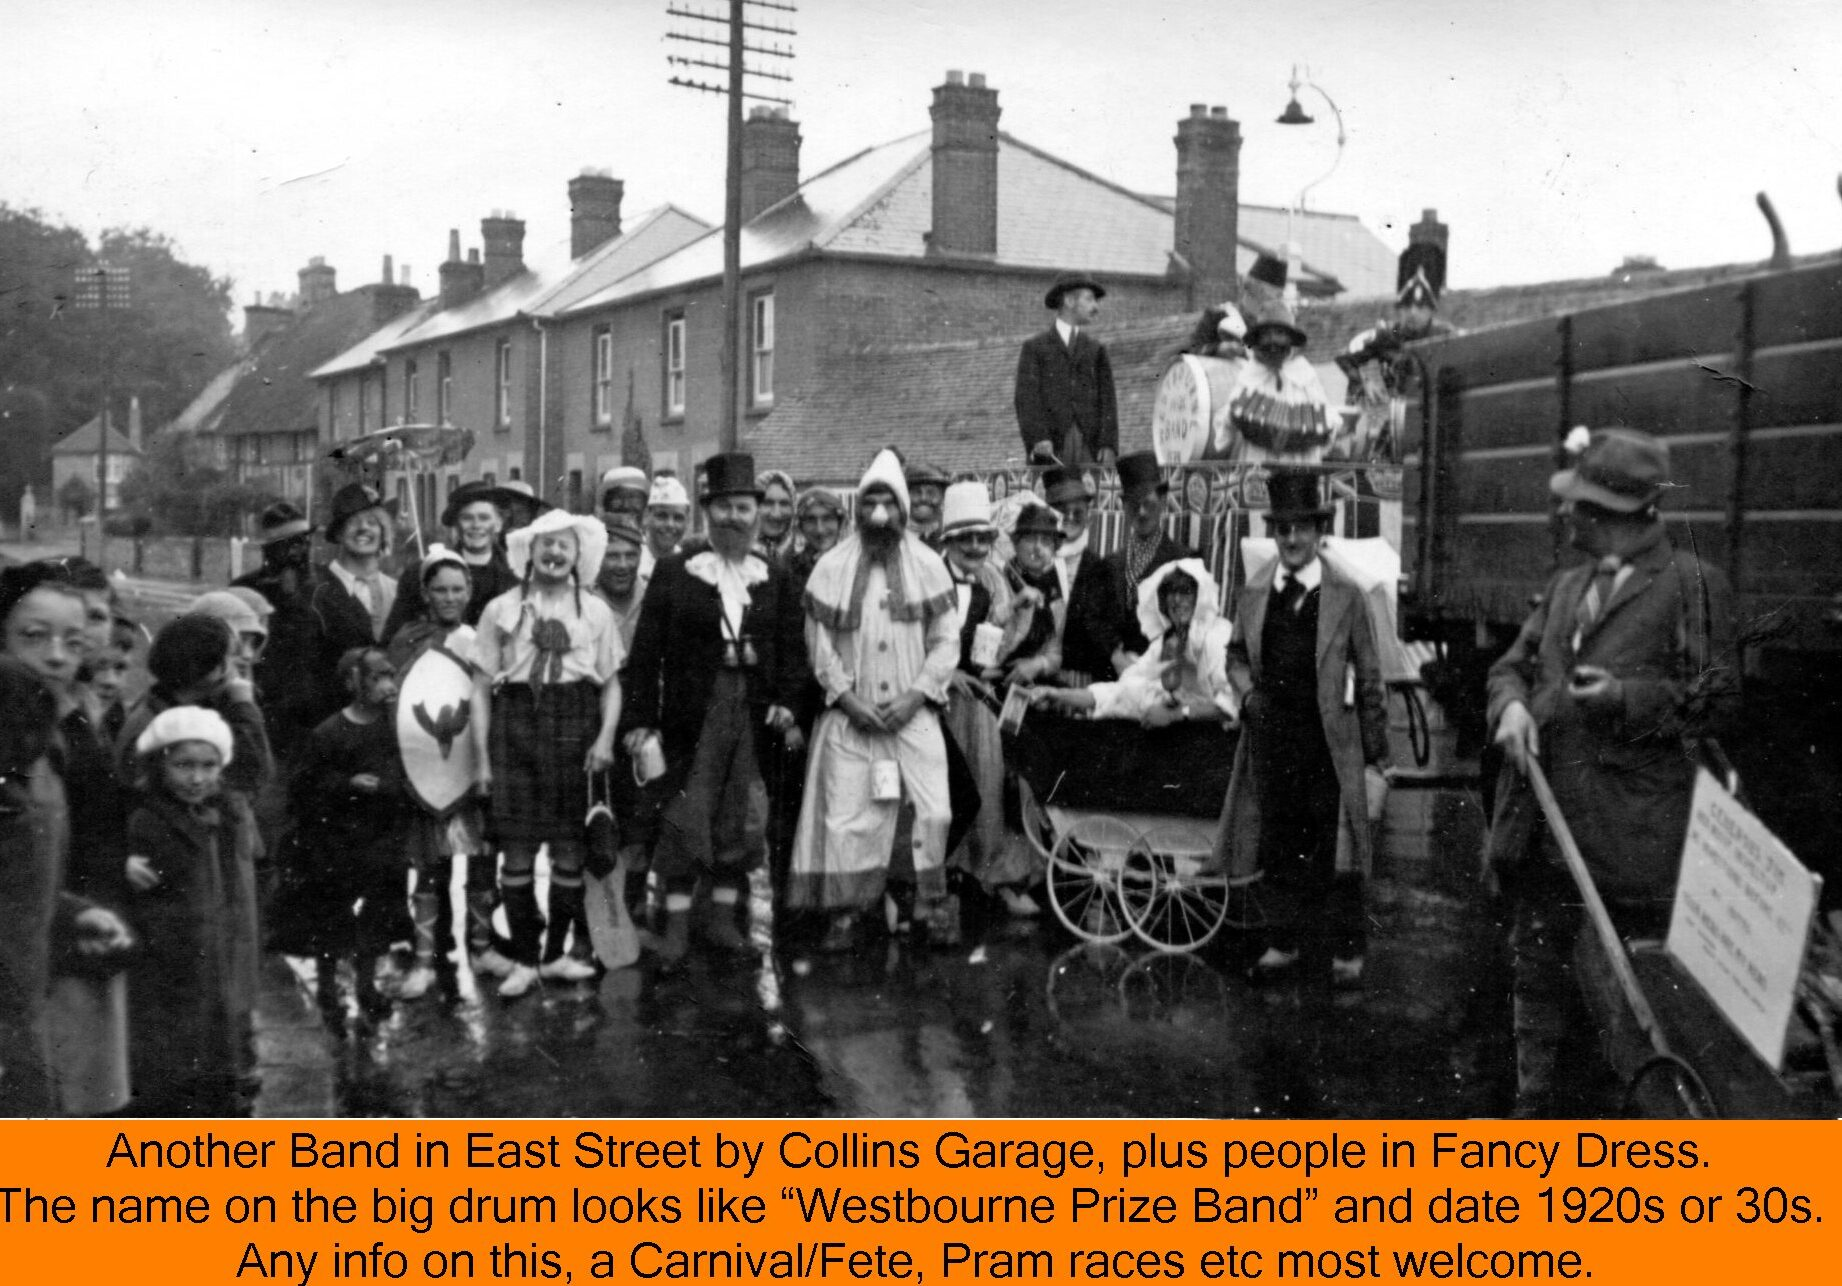 Fancy Dress and Westbourne Prize Band by Collins Garage - 1